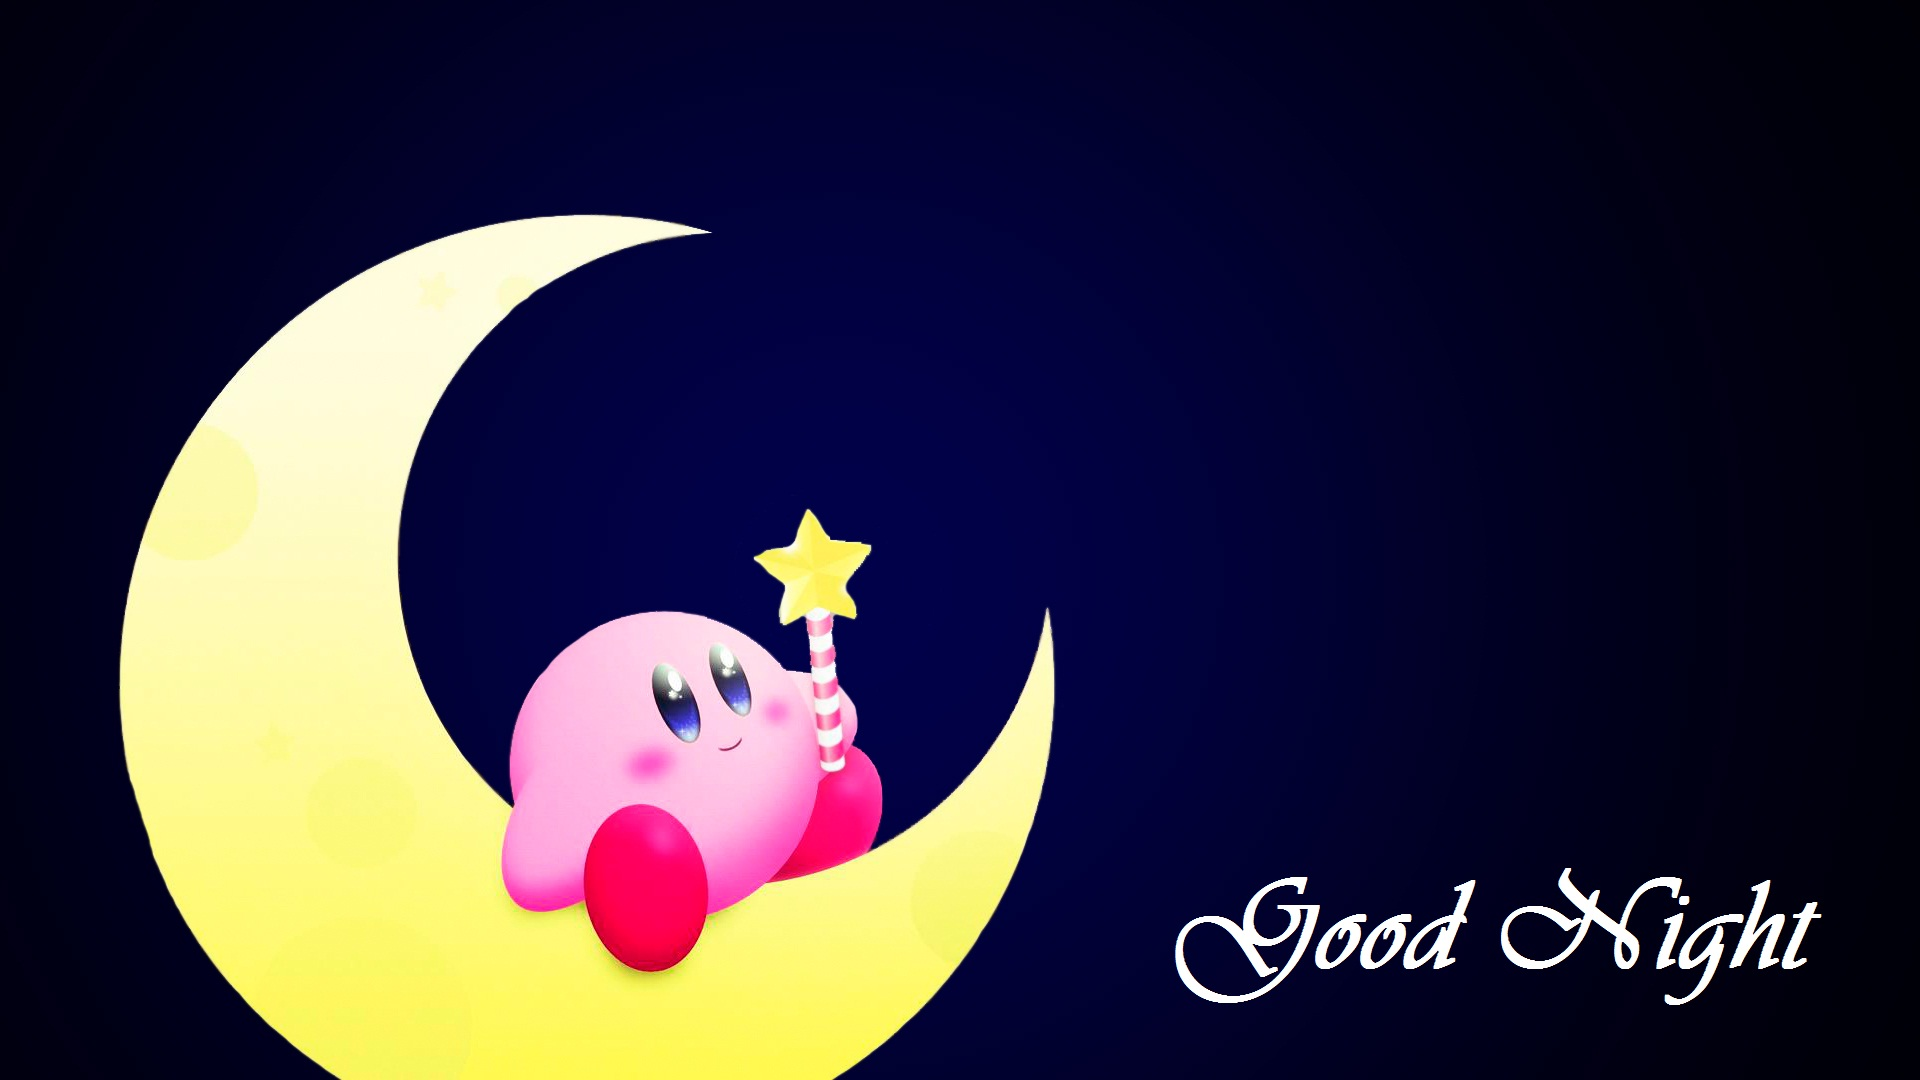 good night cute moon pink image